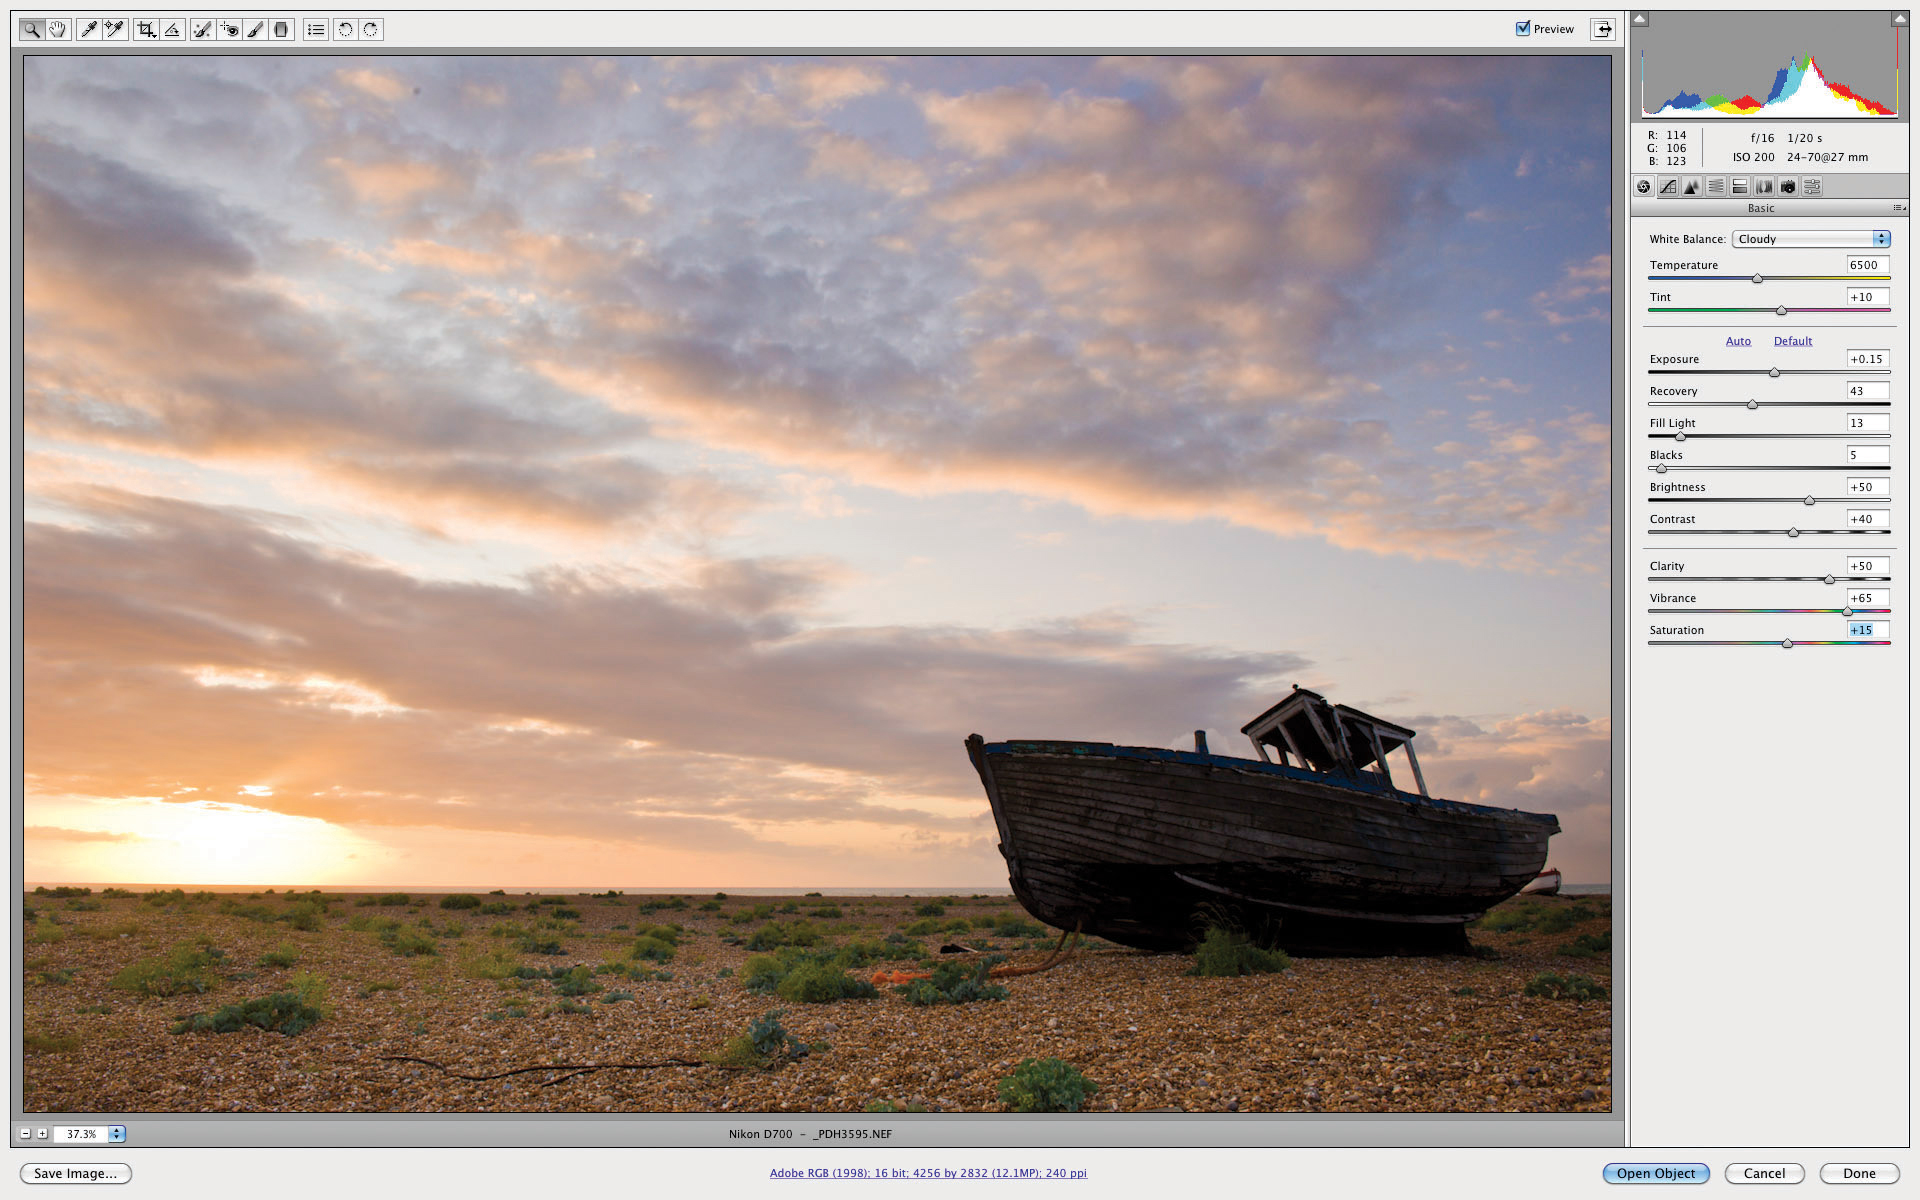 How to convert a raw file with Adobe Camera Raw